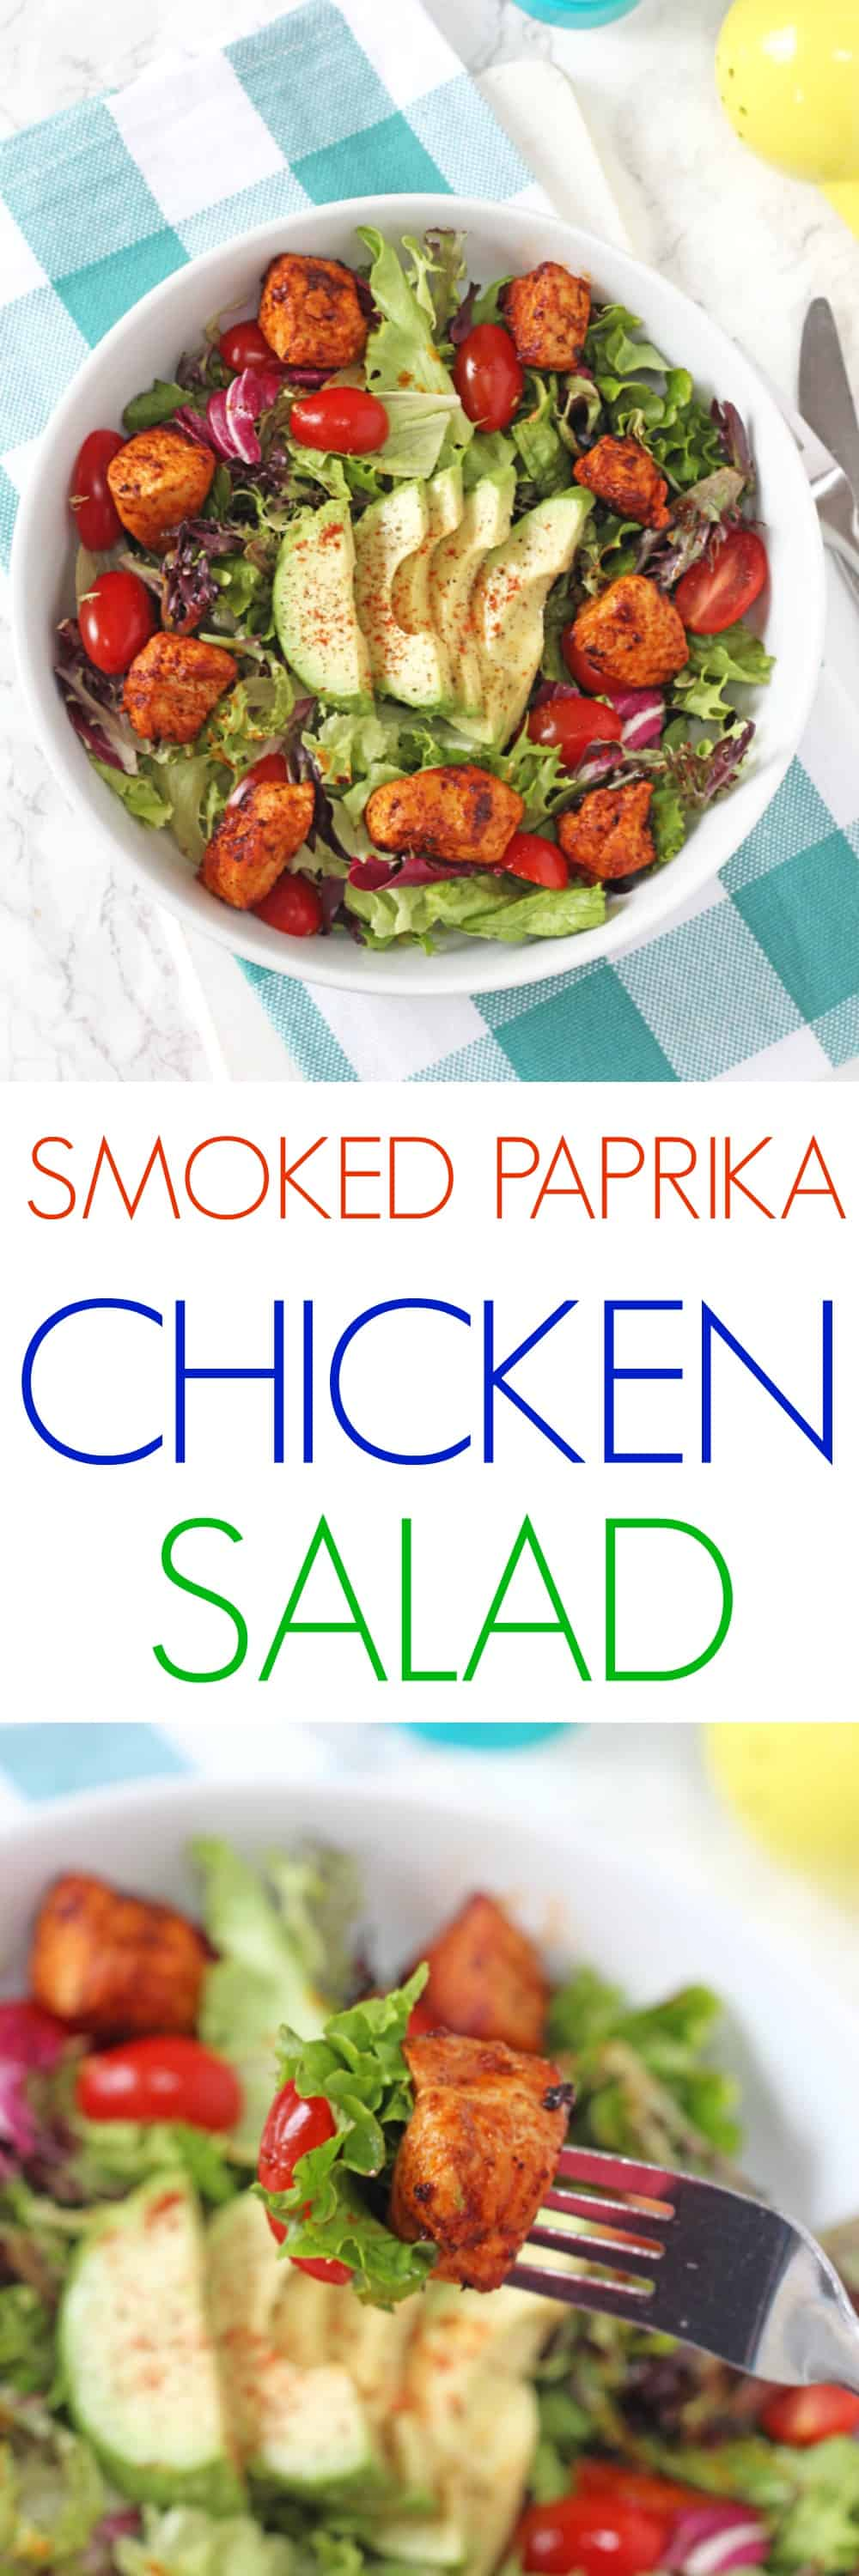 A simple but super delicious recipe for Smoked Paprika Chicken Salad. So quick and easy to whip for lunch for busy parents!